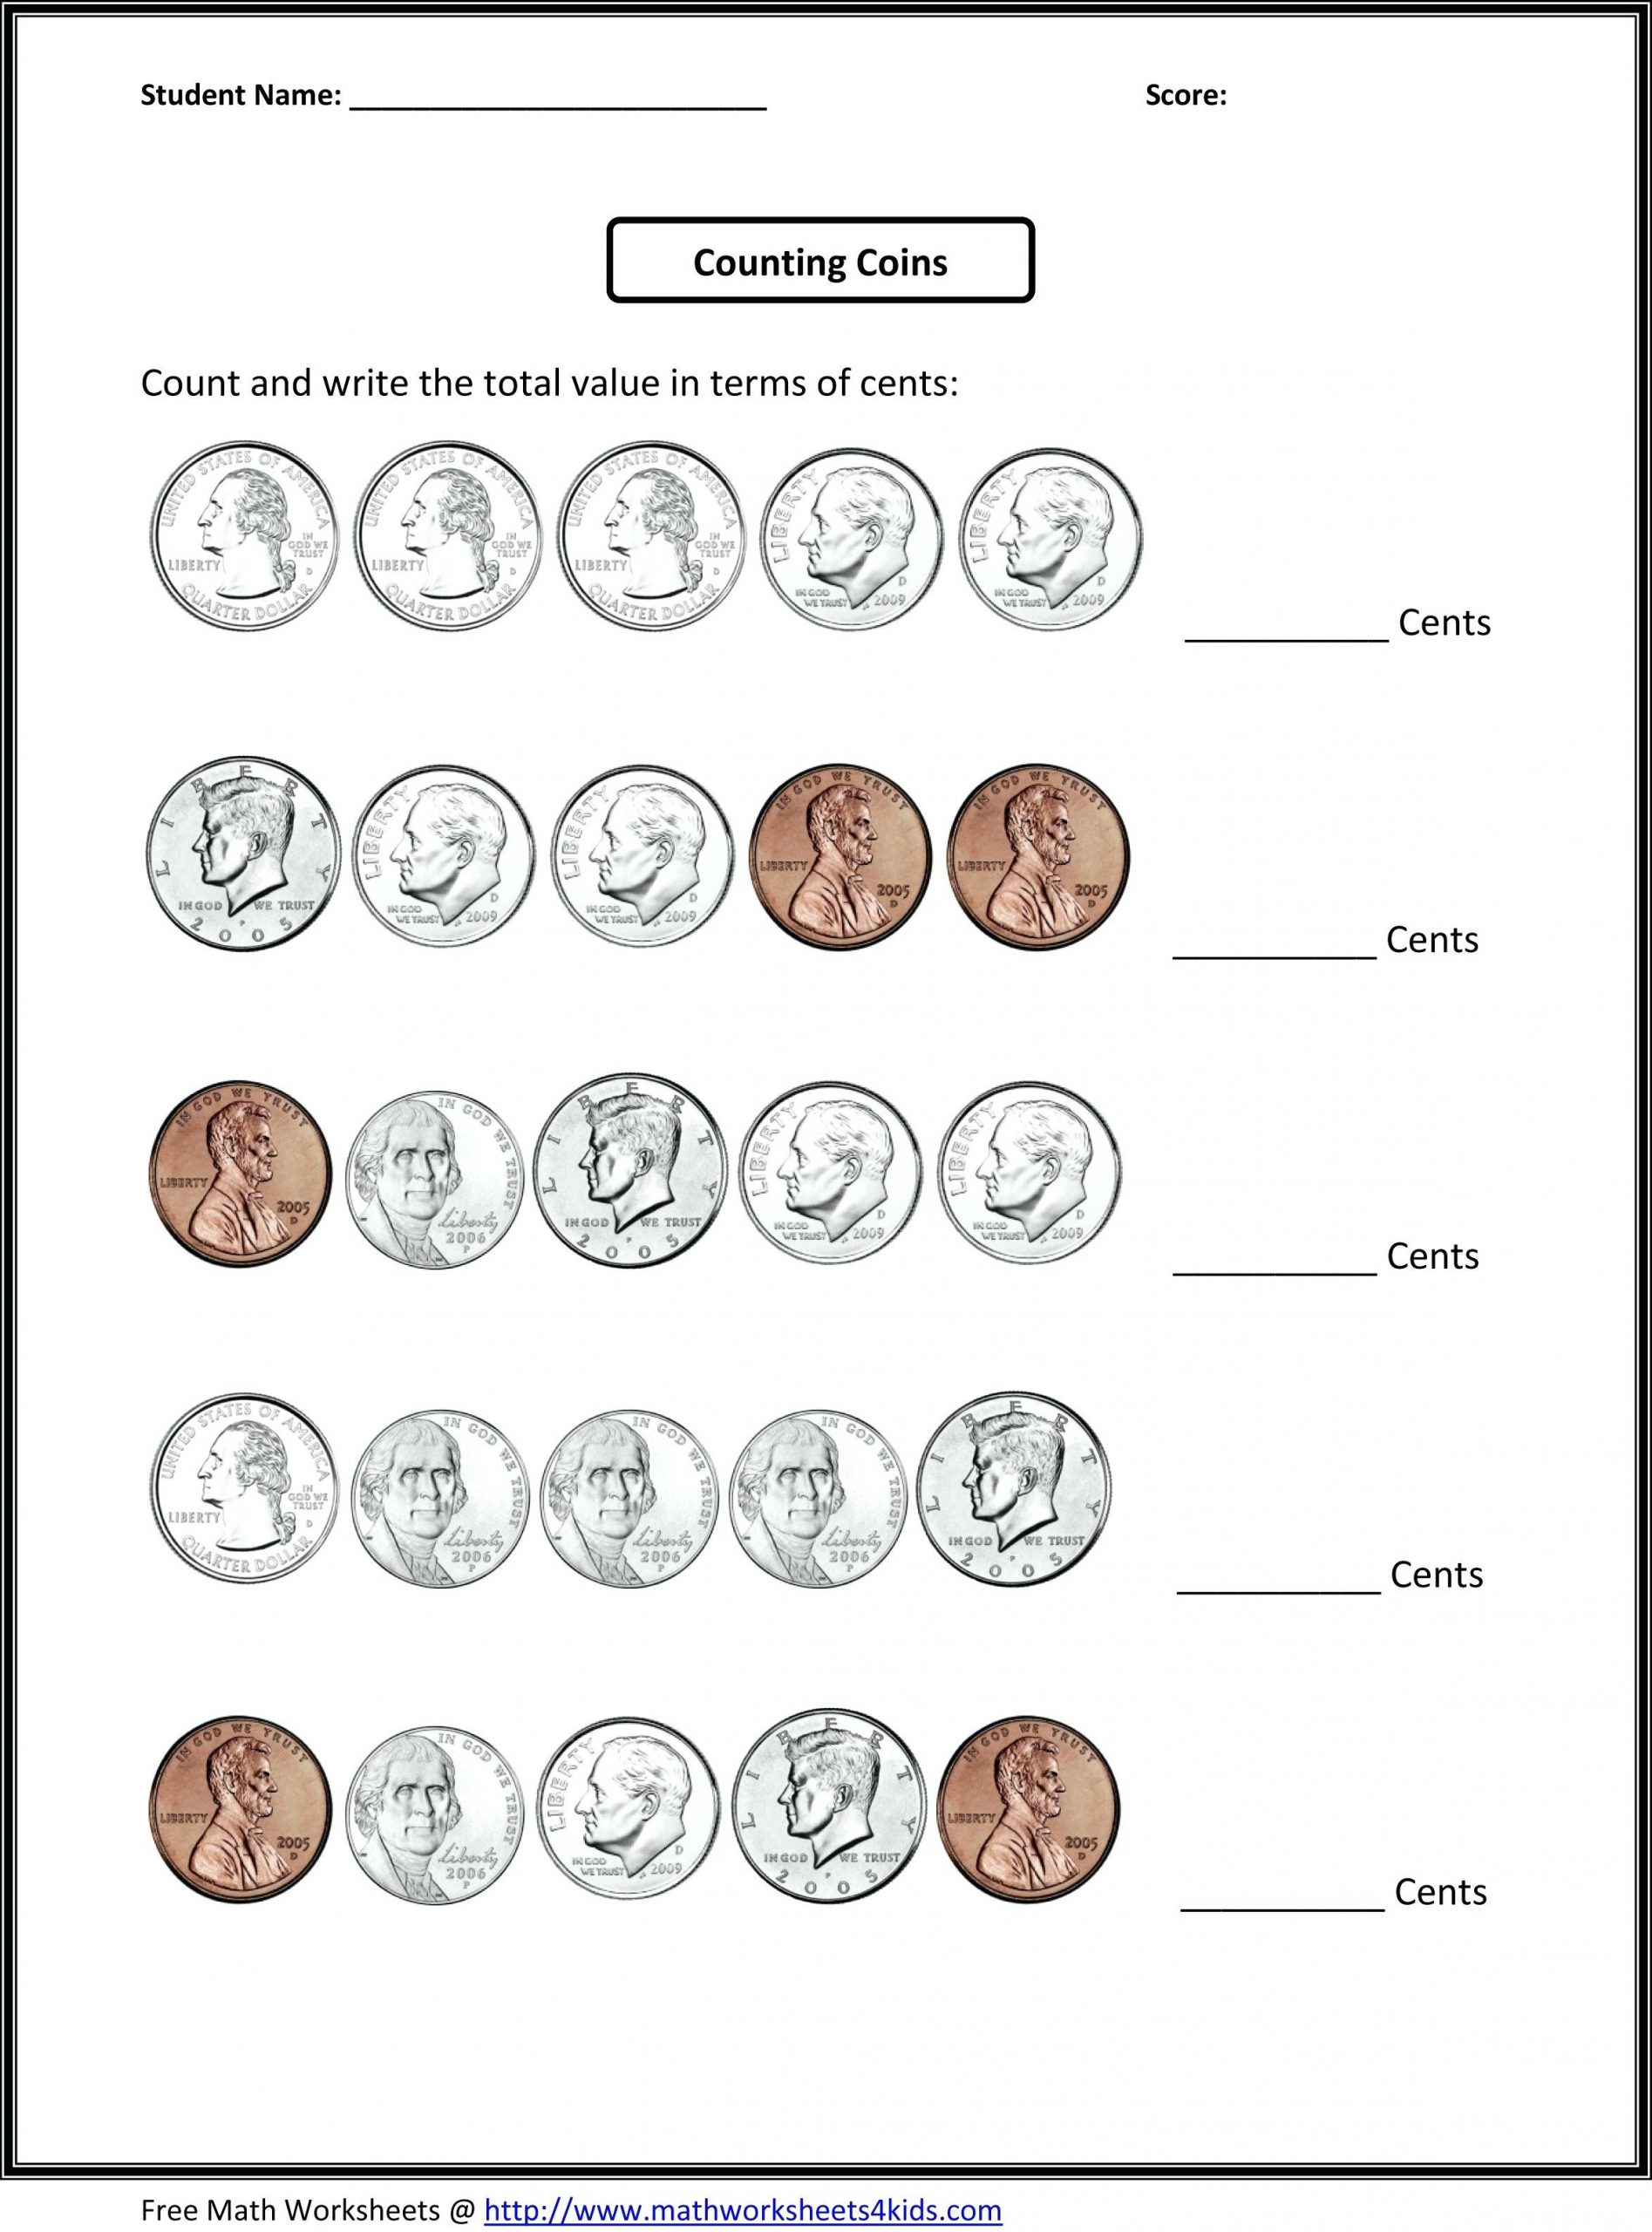 Counting Coins Worksheets 2nd Grade 66 Fun Money Worksheets to Print